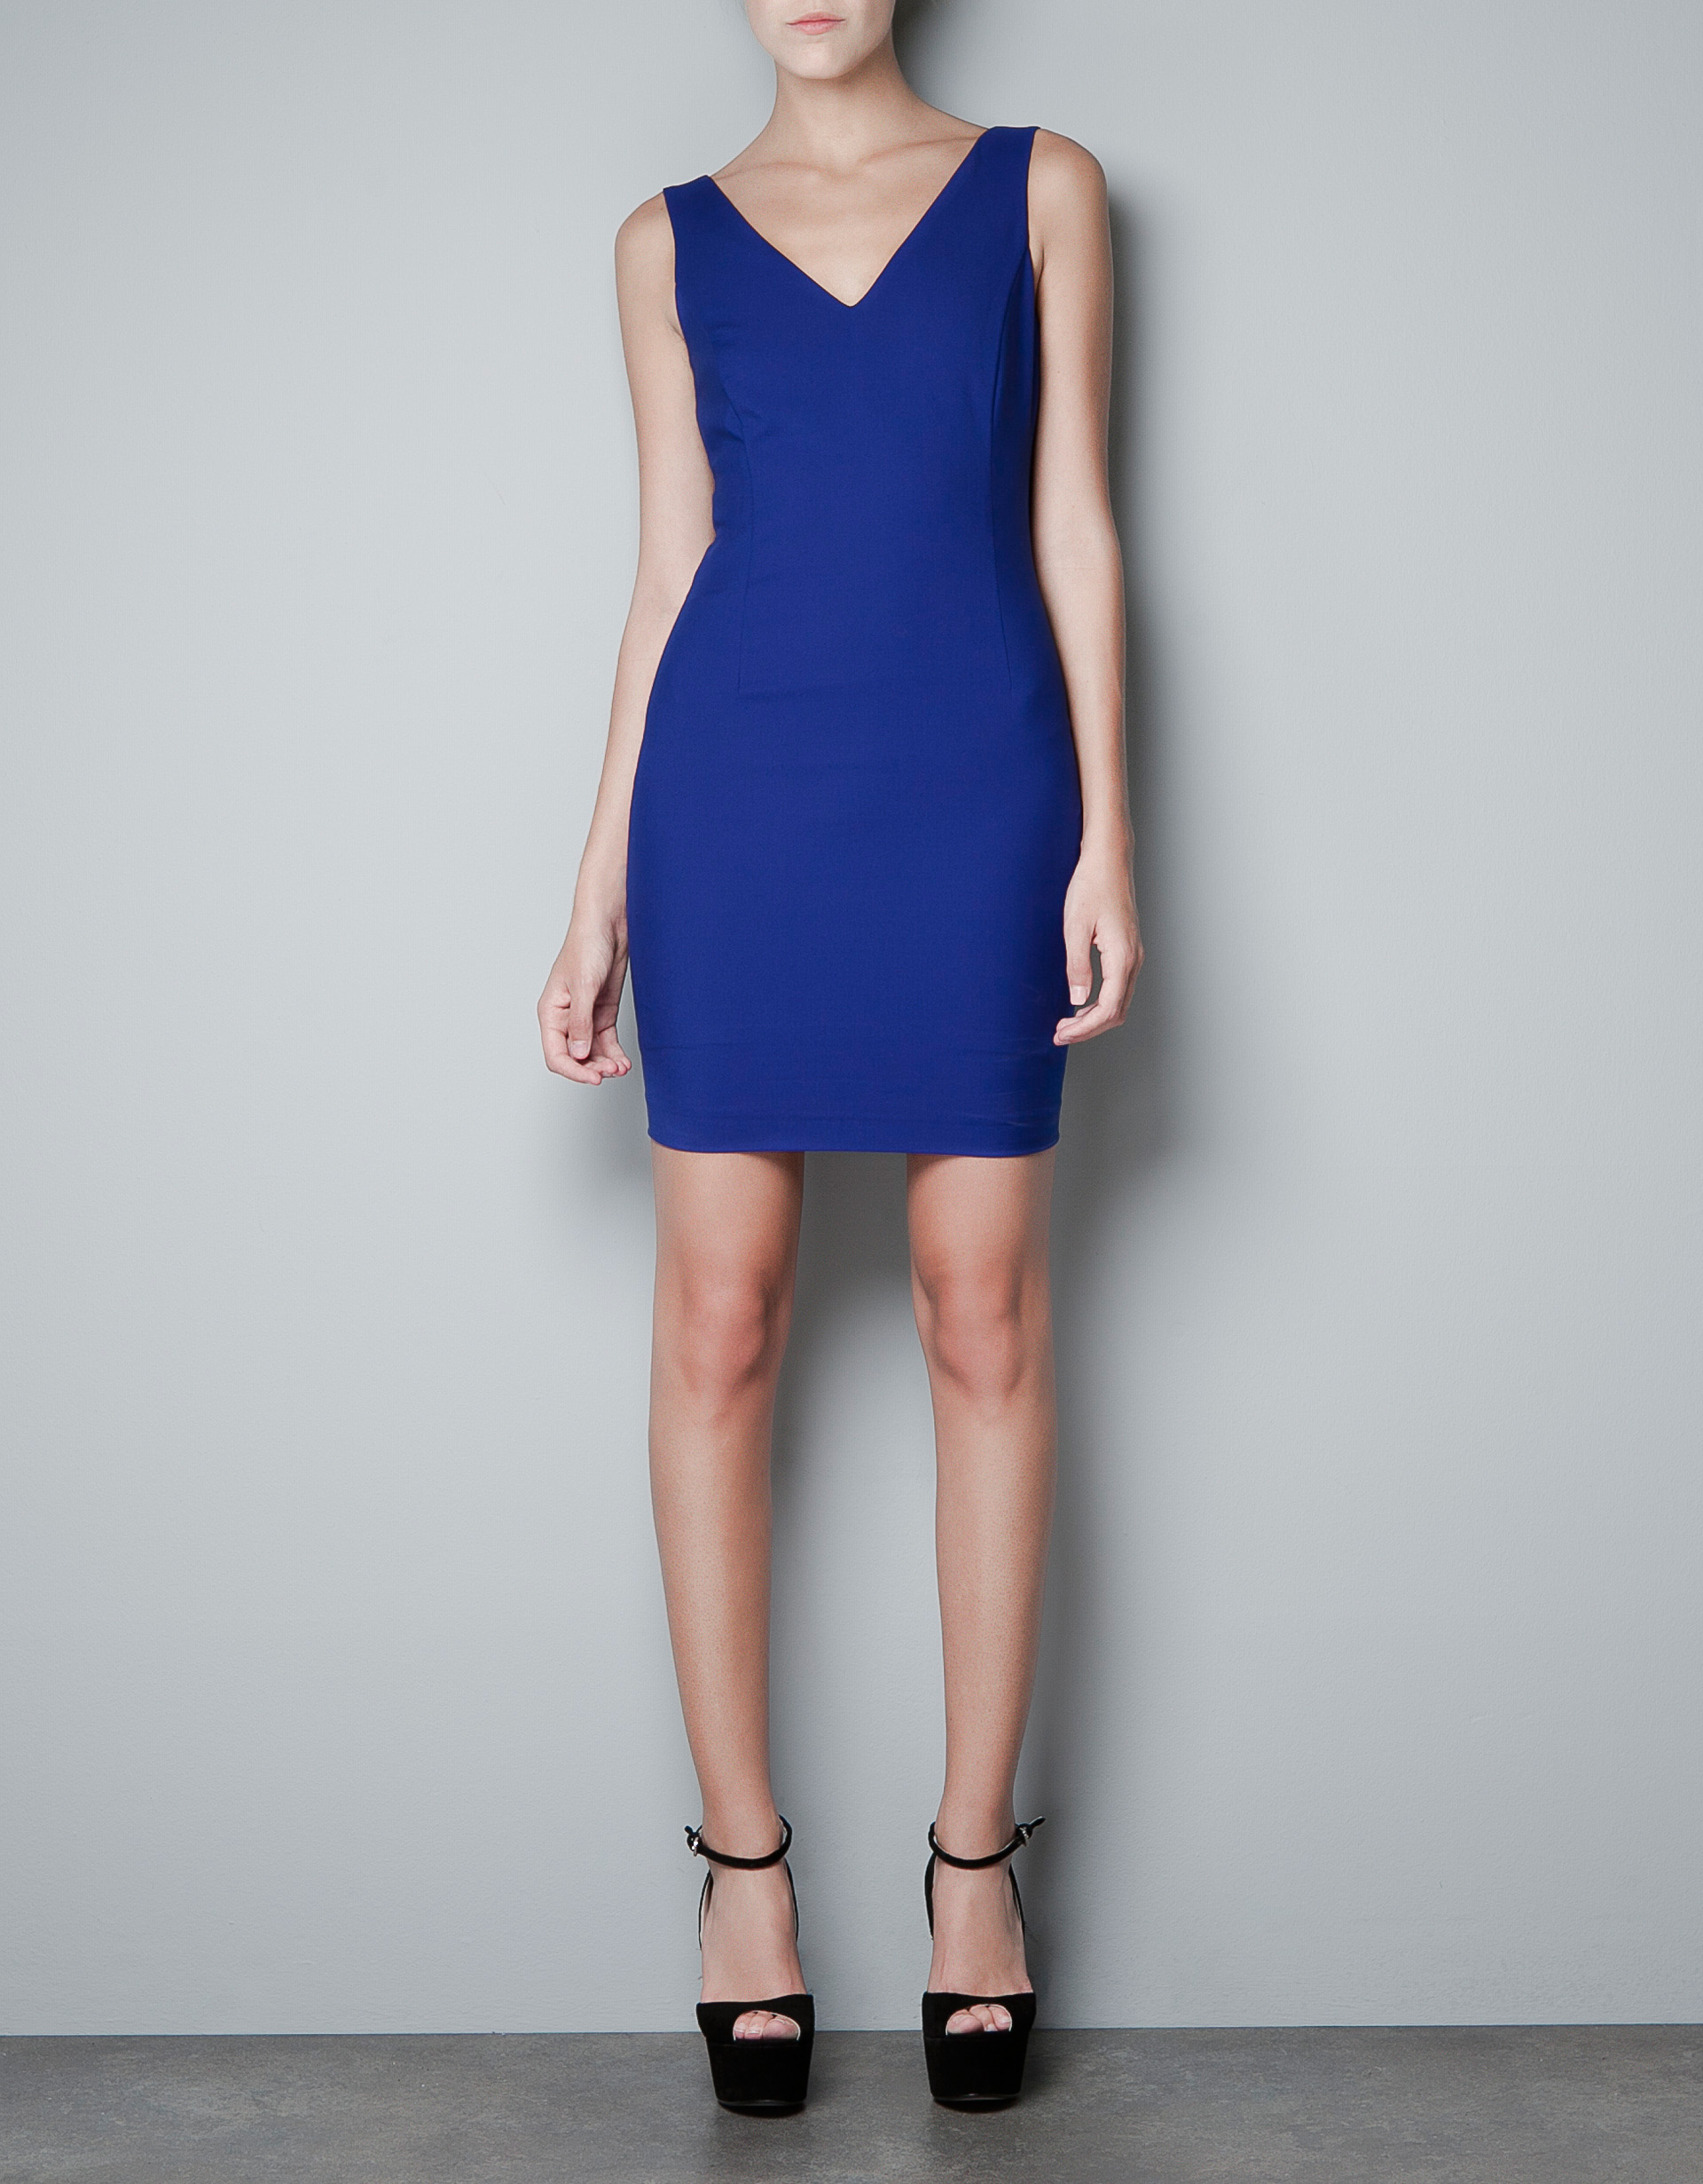 Blue dress zara black